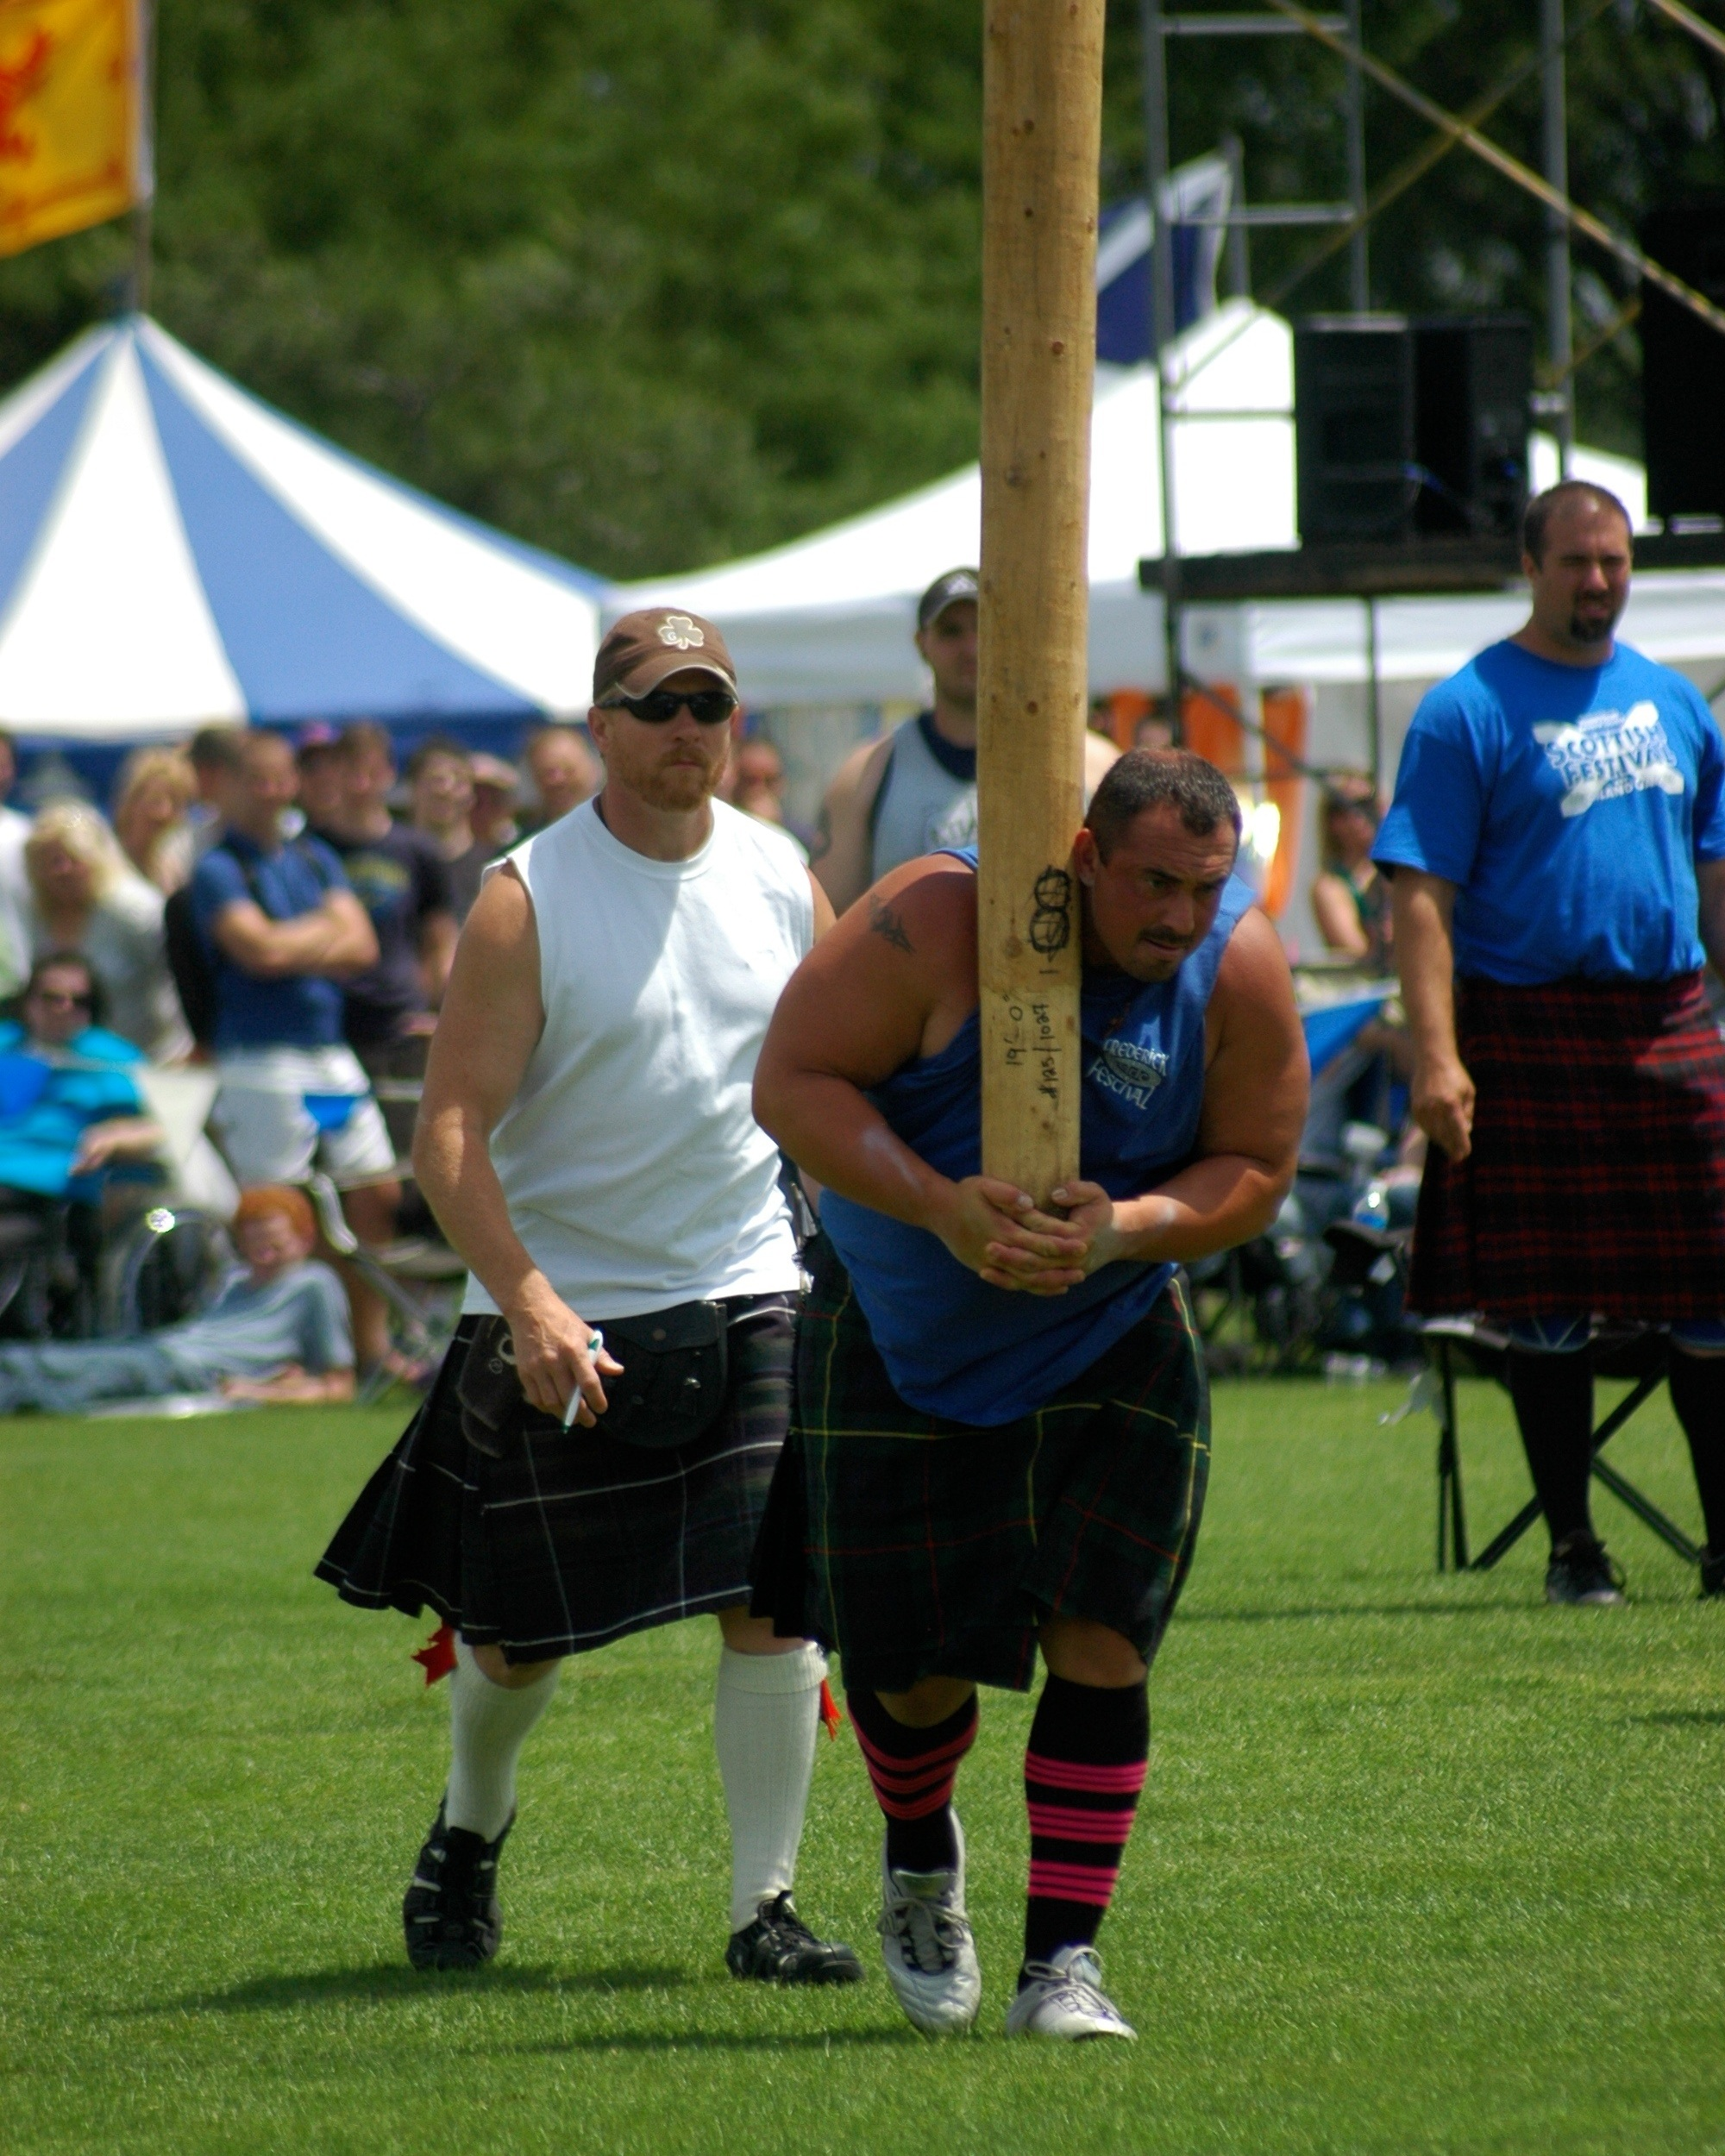 Heavy Athletics - Scottish Heavyweight Athletics form the centerpiece activities at the Highland Games. These contests have their roots in the 10th century when Scottish King Malcolm Ceanmore first hosted competitions of strength and speed among his warriors and clansmen.Witness classic contests of strength & accuracy including: the Caber Toss, Clachneart, Hammer Throw, Sheaf Toss & Weight Throws.